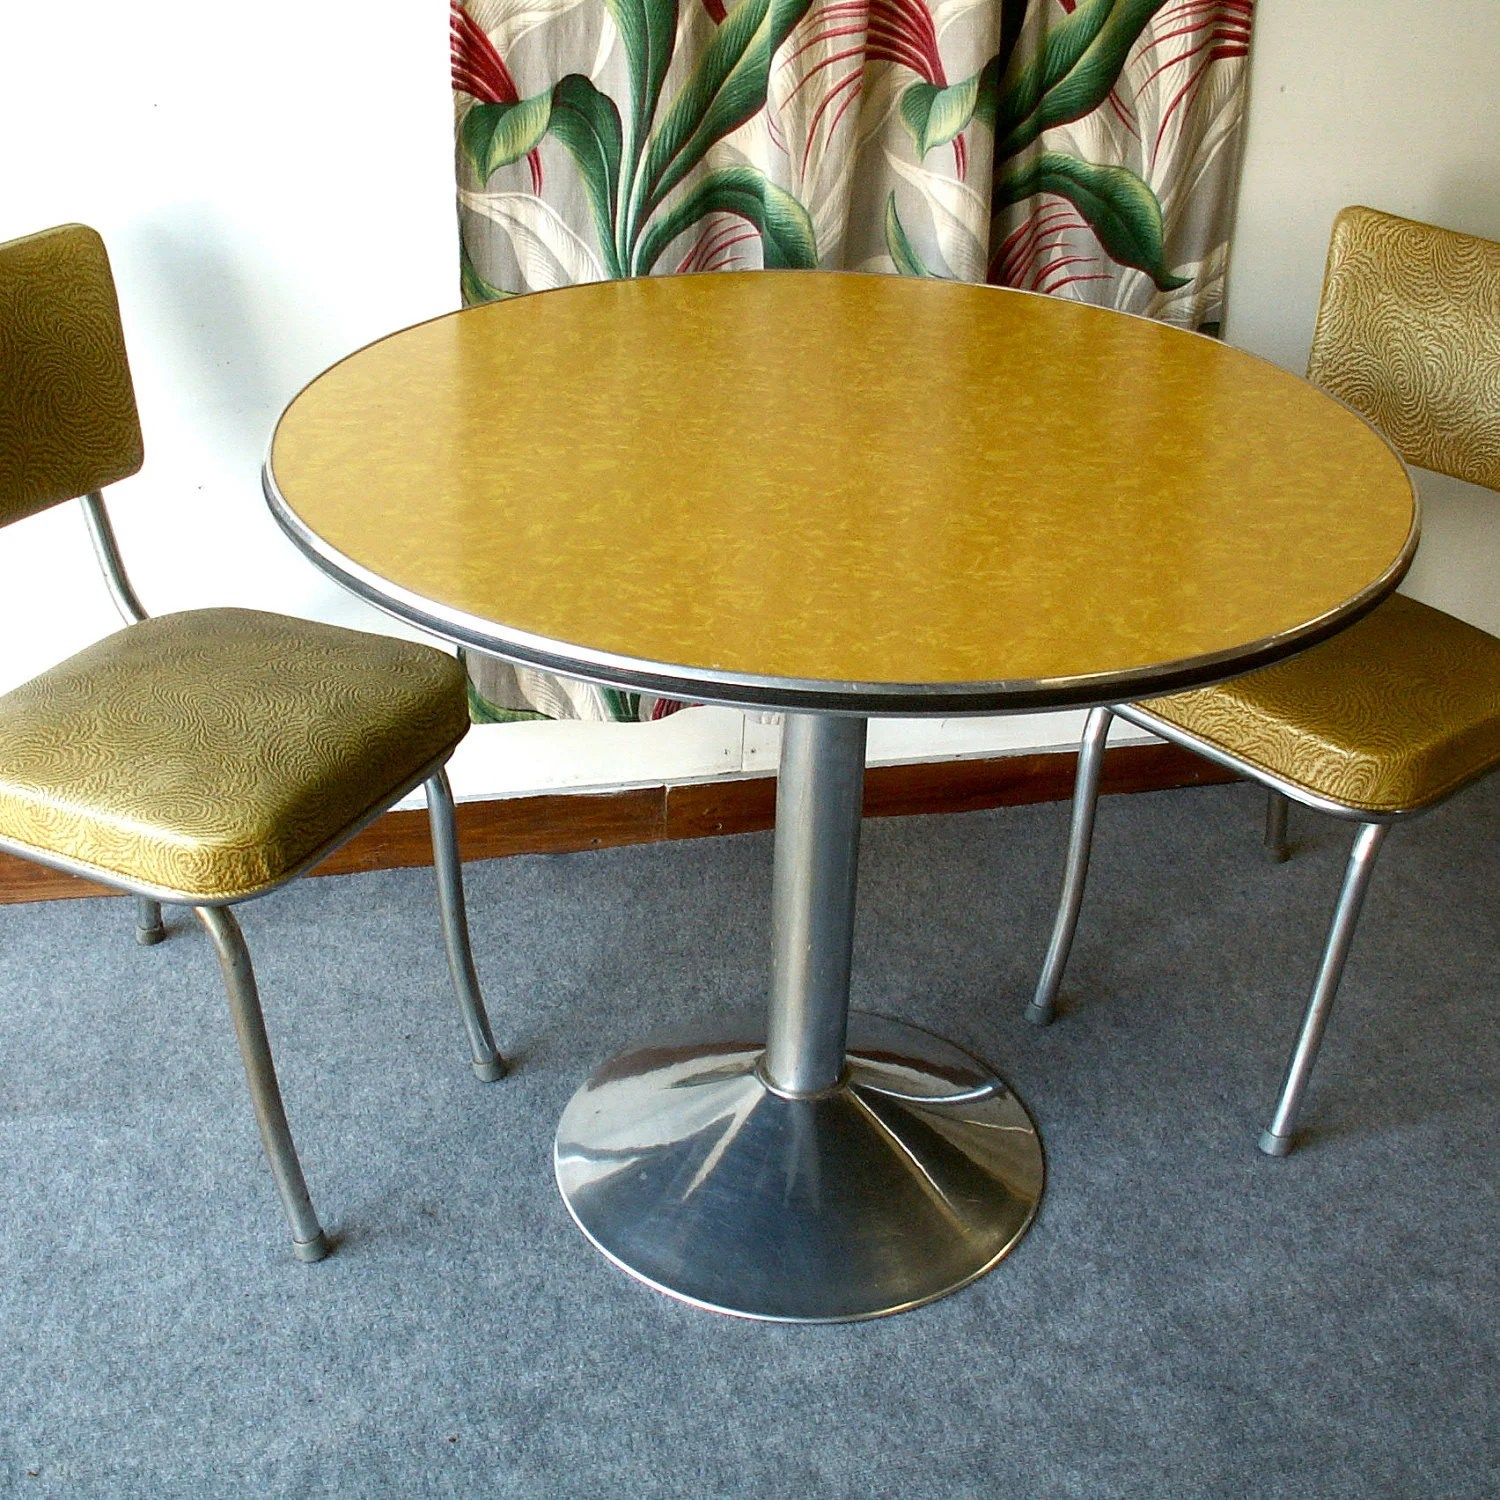 Formica Table And Chairs Round Yellow Vintage Formica Pedestal Table With Two Chairs